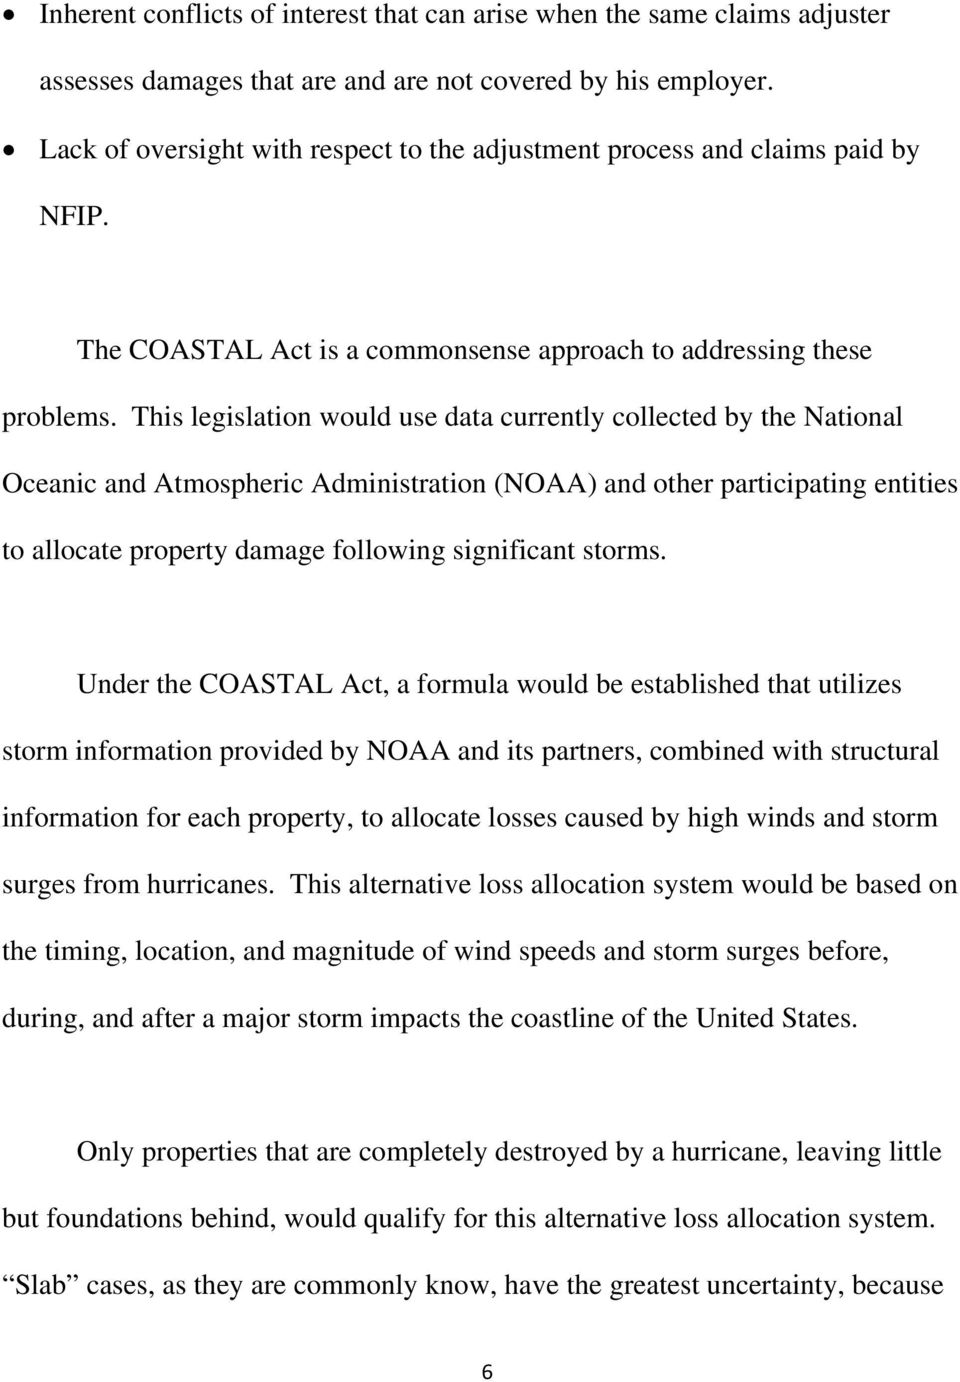 This legislation would use data currently collected by the National Oceanic and Atmospheric Administration (NOAA) and other participating entities to allocate property damage following significant